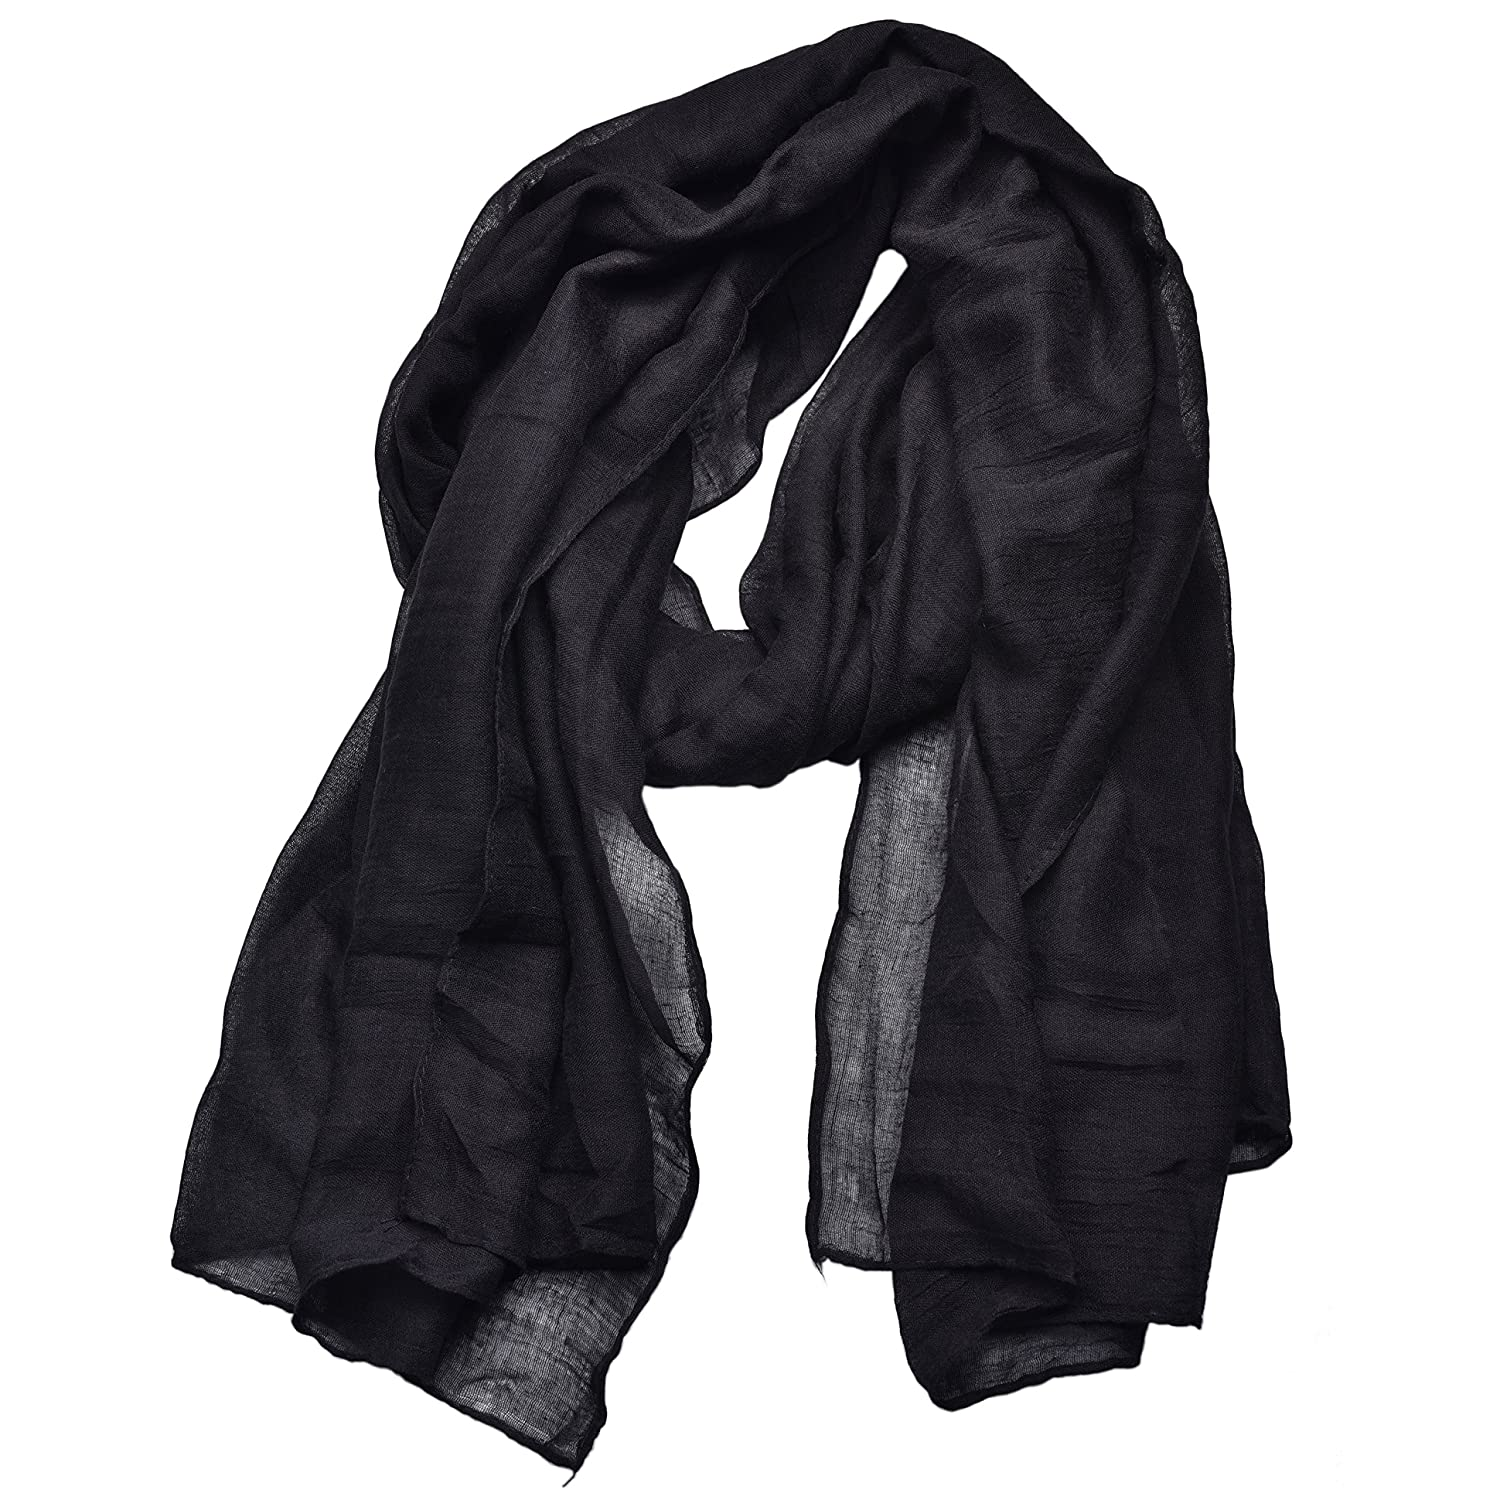 0ac4e3783 Woogwin Light Soft Scarves Fashion Scarf Shawl Wrap For Women Men (Black)  at Amazon Women's Clothing store: